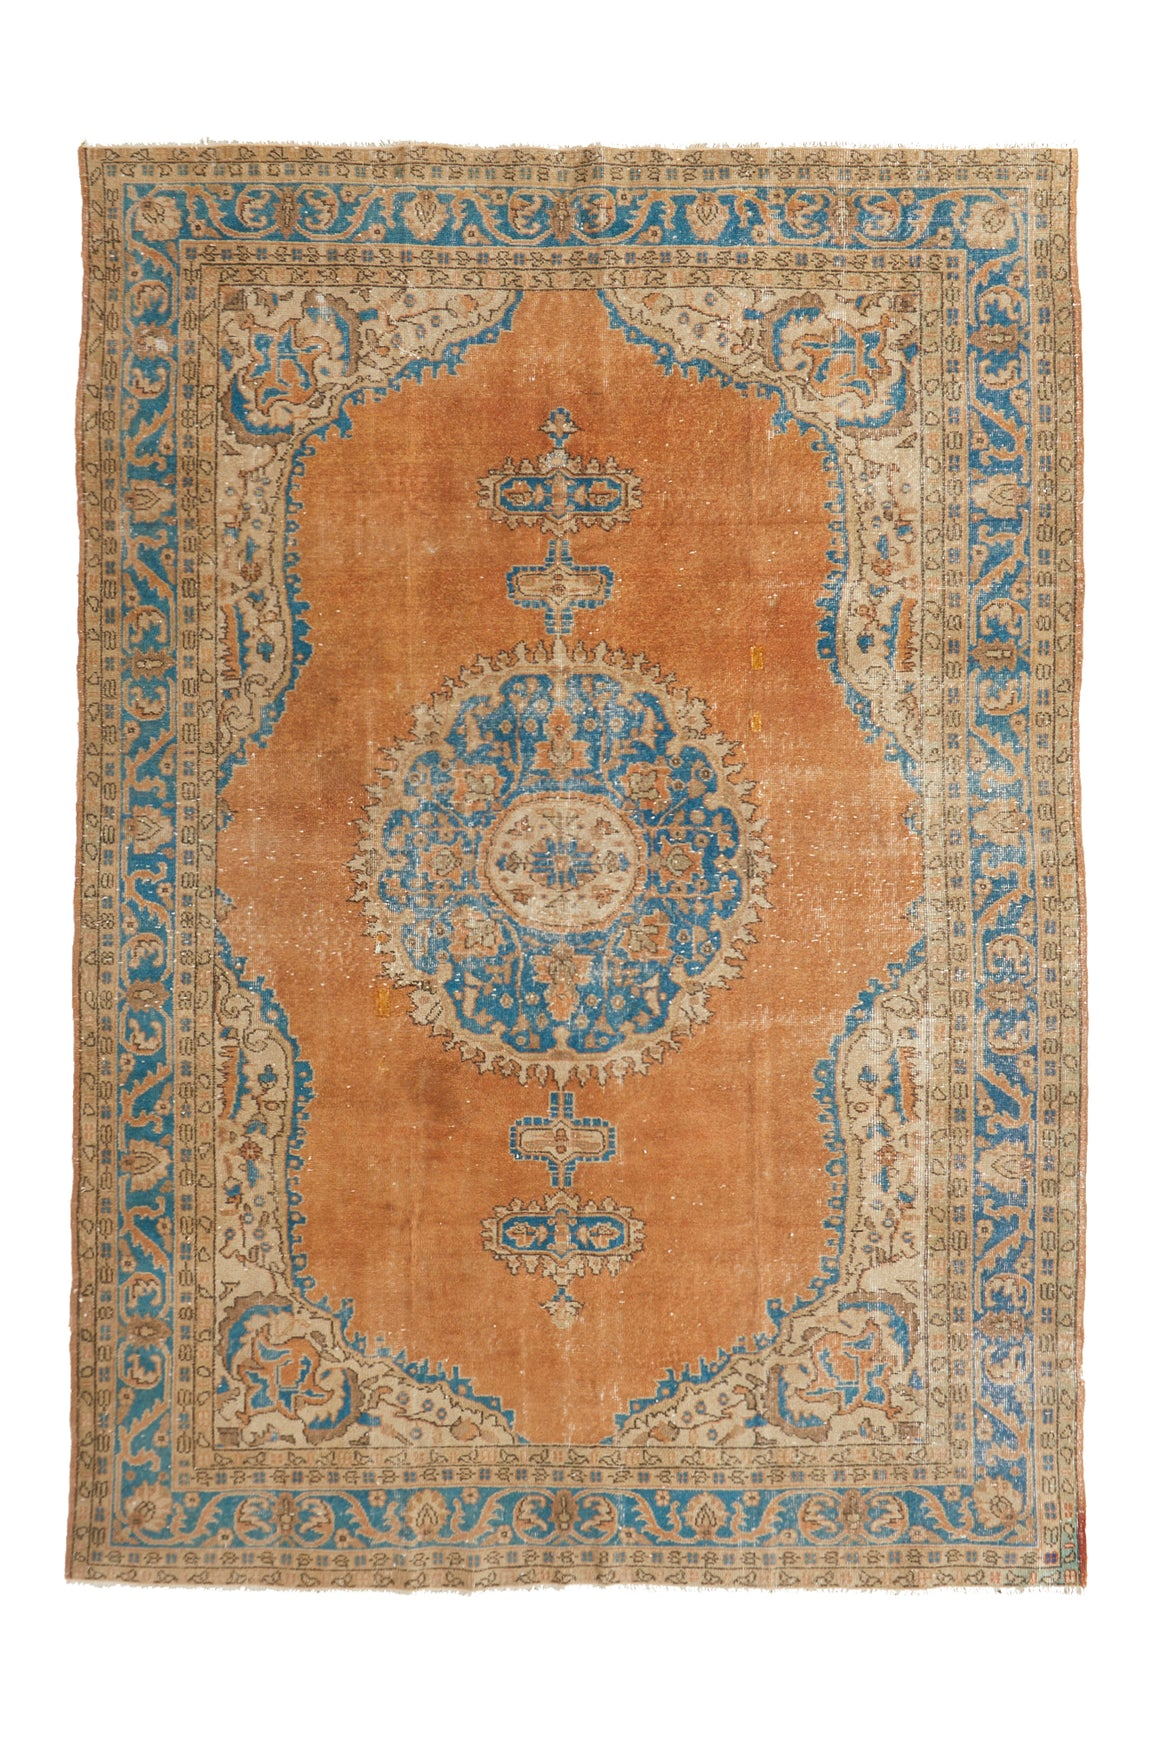 'Ada' Vintage Oushak Area Rug - 7' x 10'2'' - Canary Lane - Curated Textiles